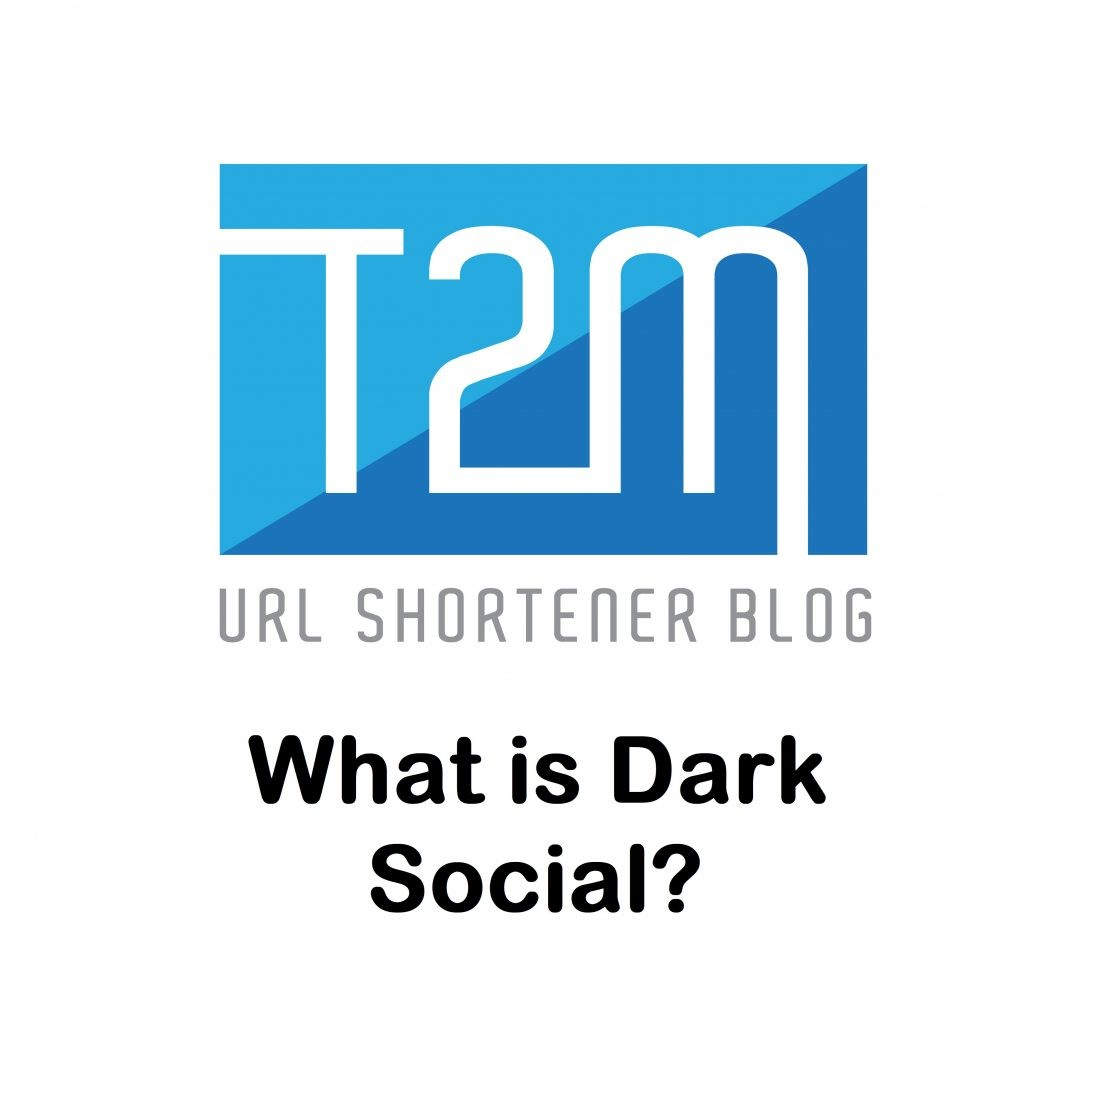 What is the Dark Social?